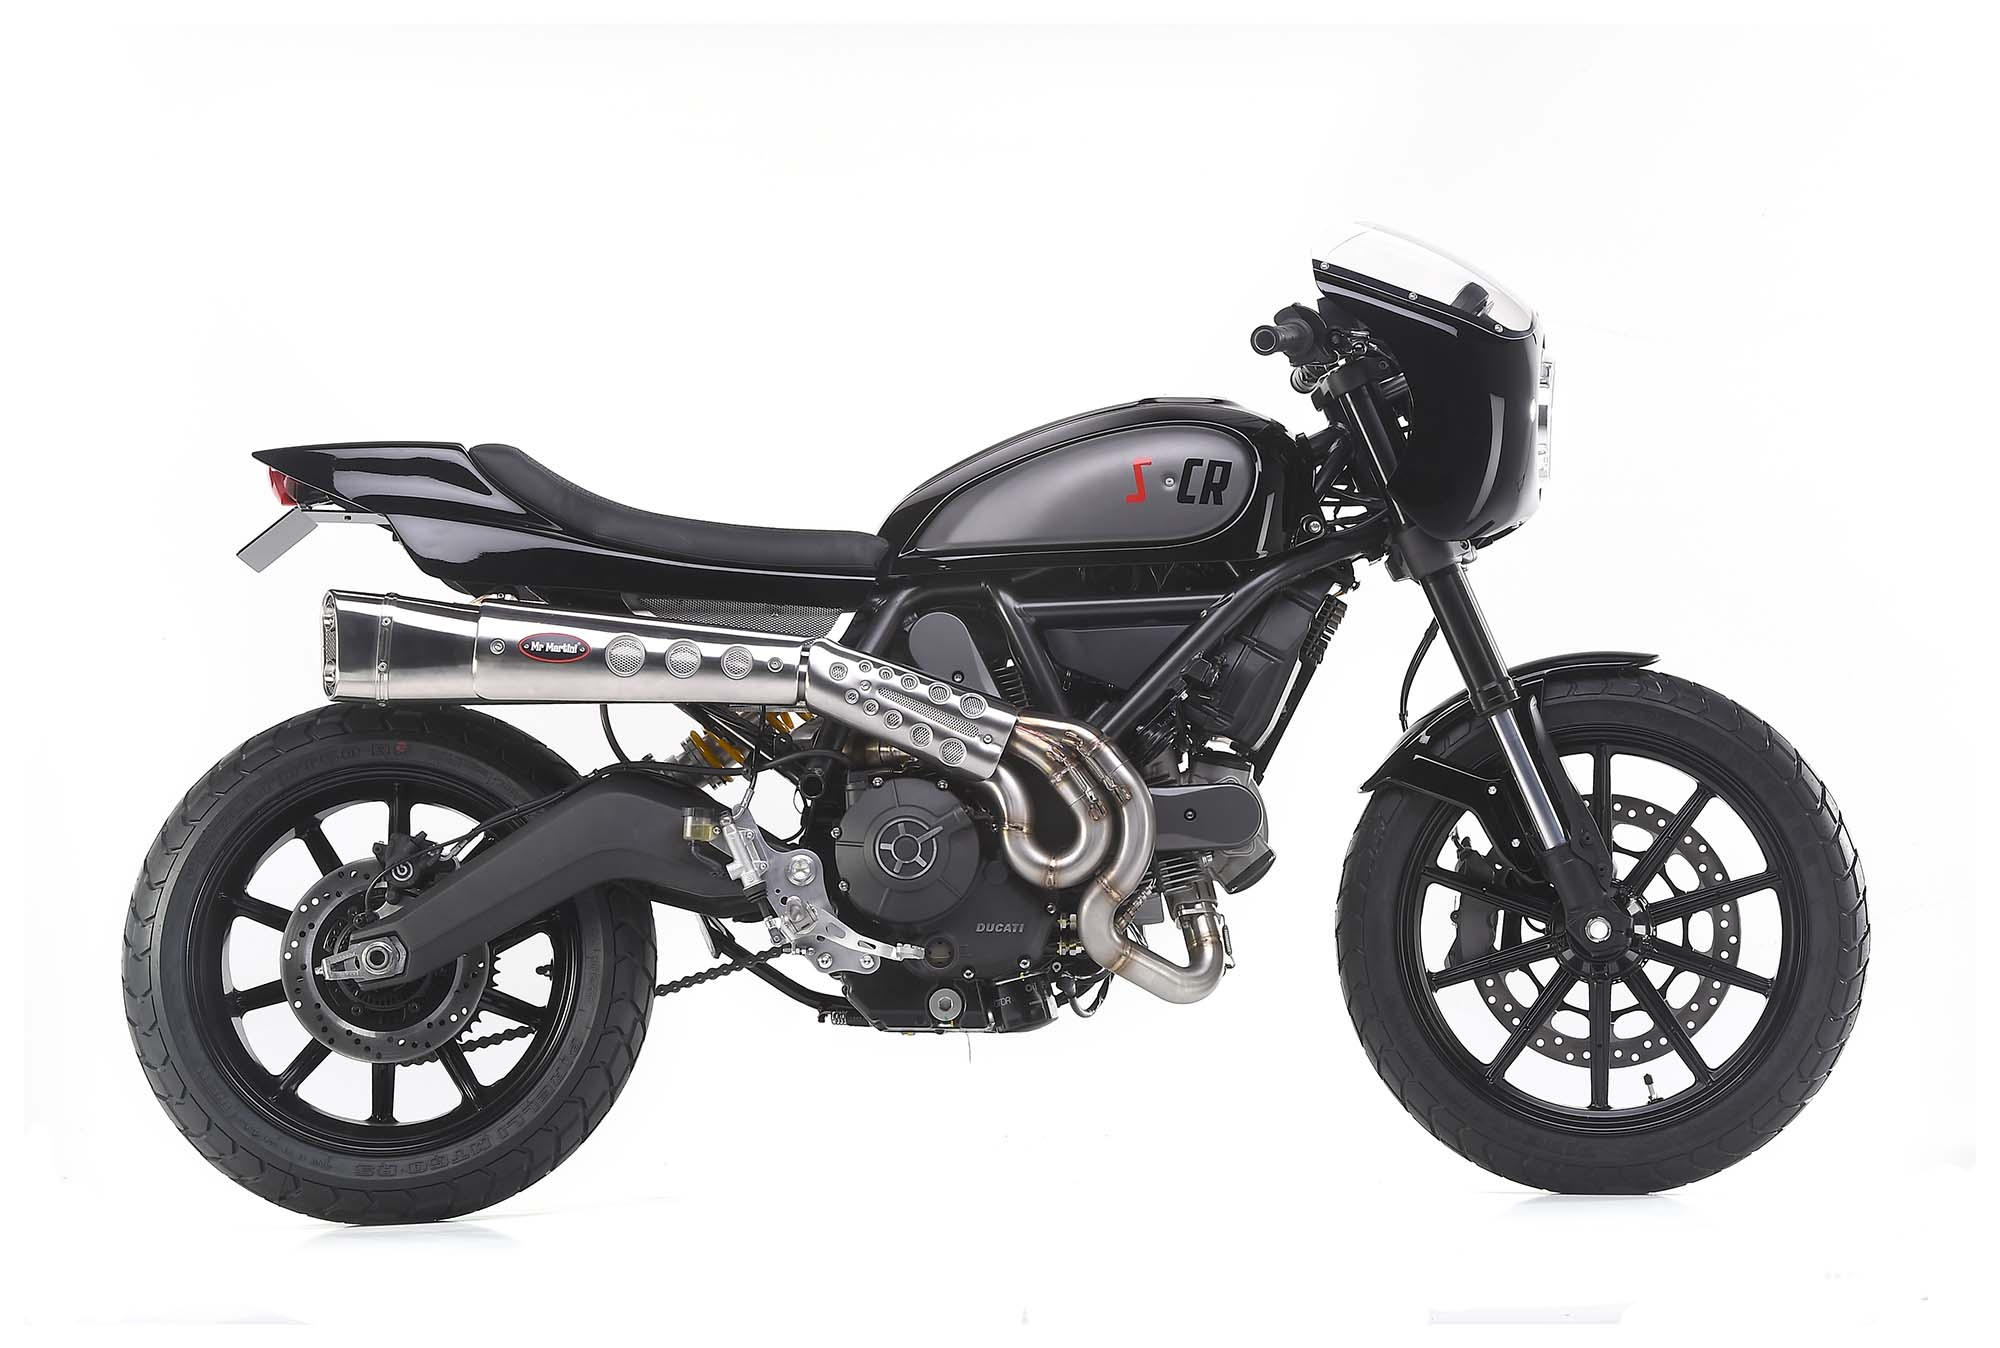 scrambler caf racer ducati scrambler by mr martini asphalt rubber. Black Bedroom Furniture Sets. Home Design Ideas